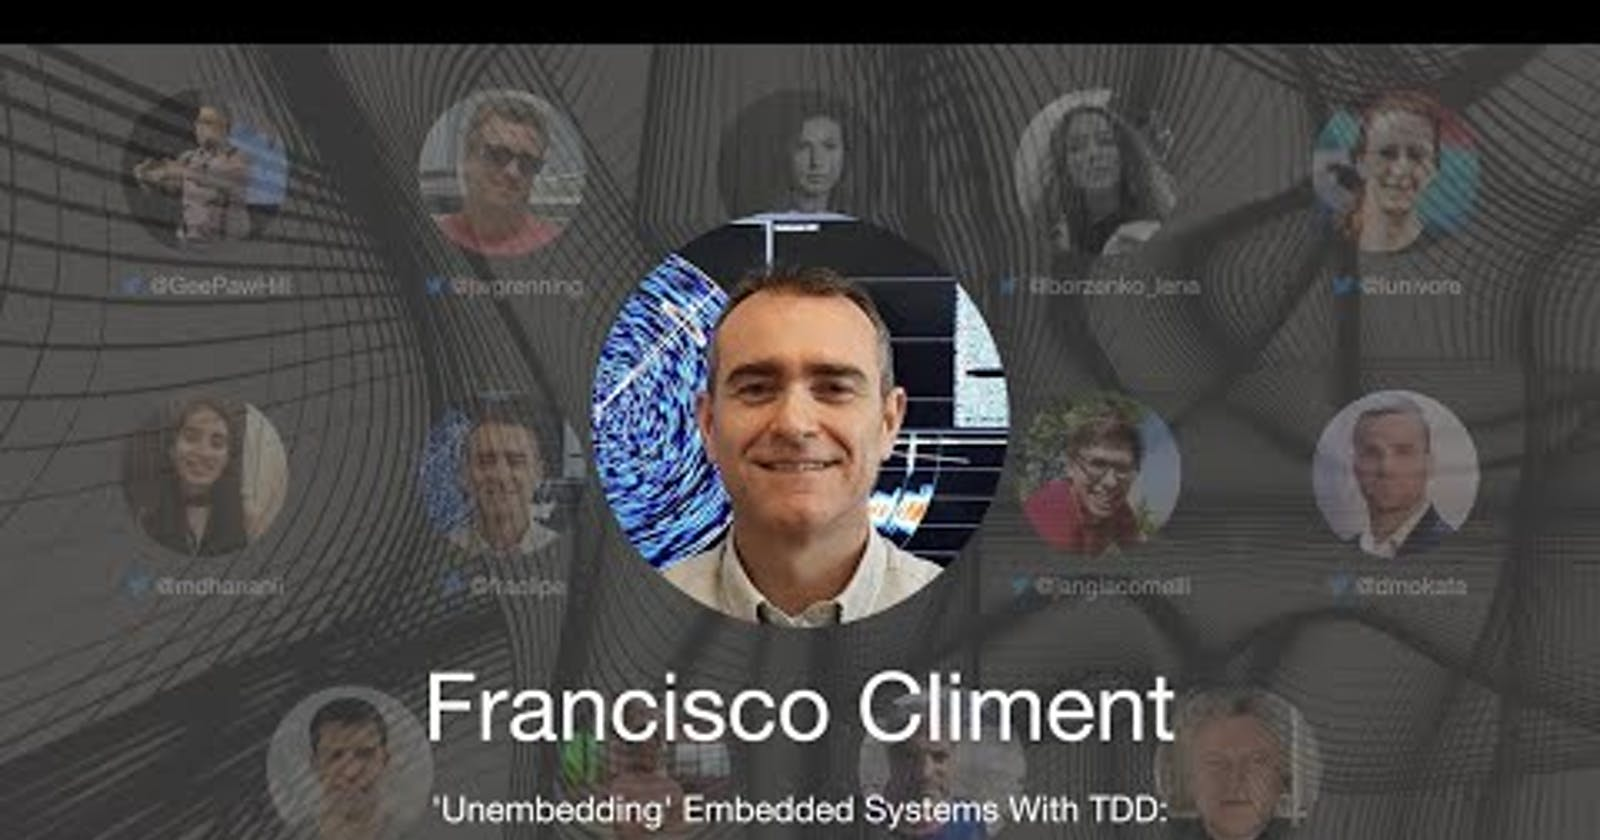 TDD Conference 2021 - Benefits Of Going Beyond The Make-It-Work Phase - Francisco Climent